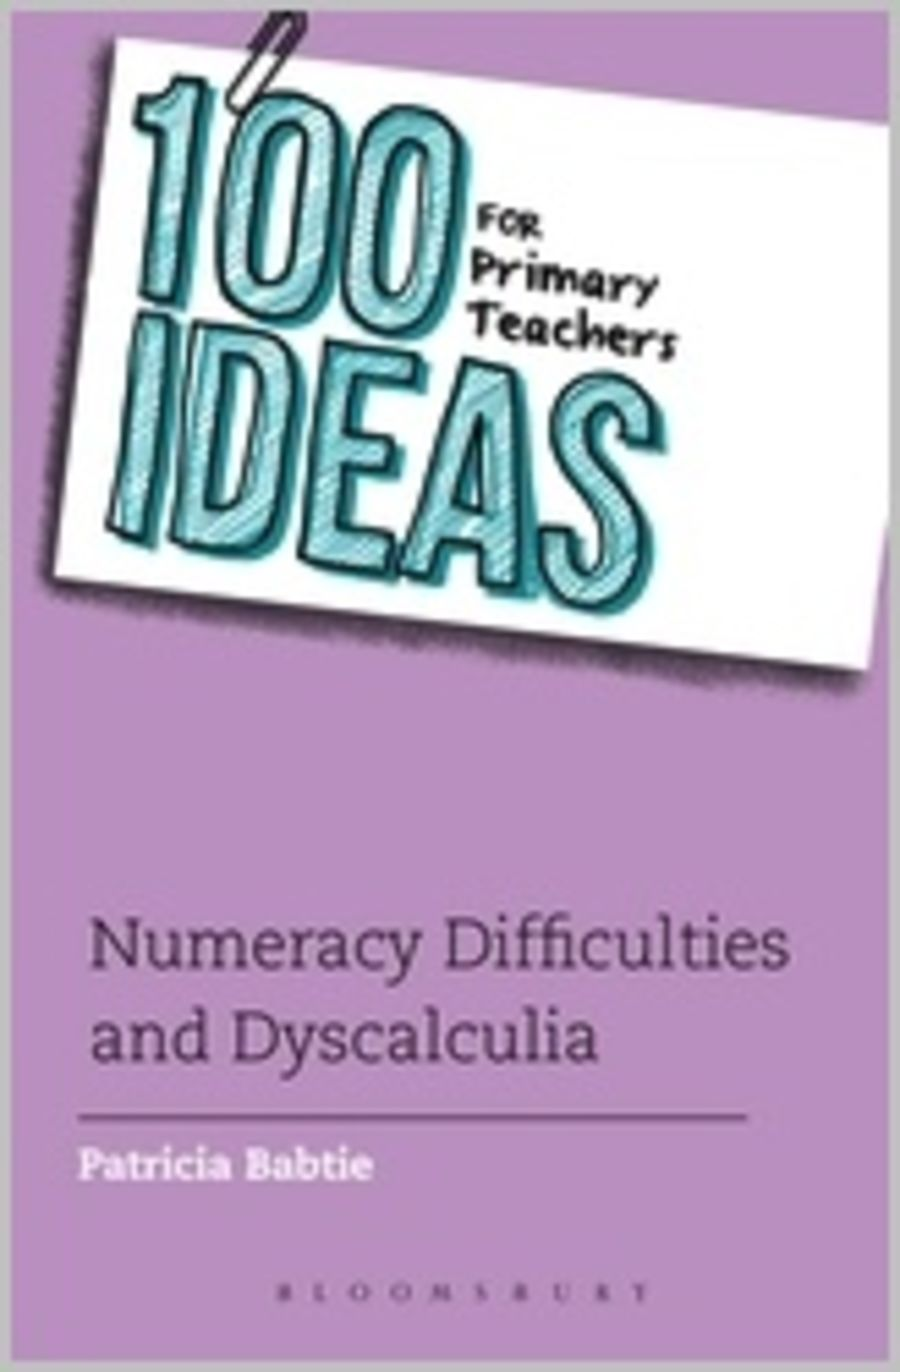 100 Ideas for Numeracy Difficulties and Dyscalculia for Primary Teachers